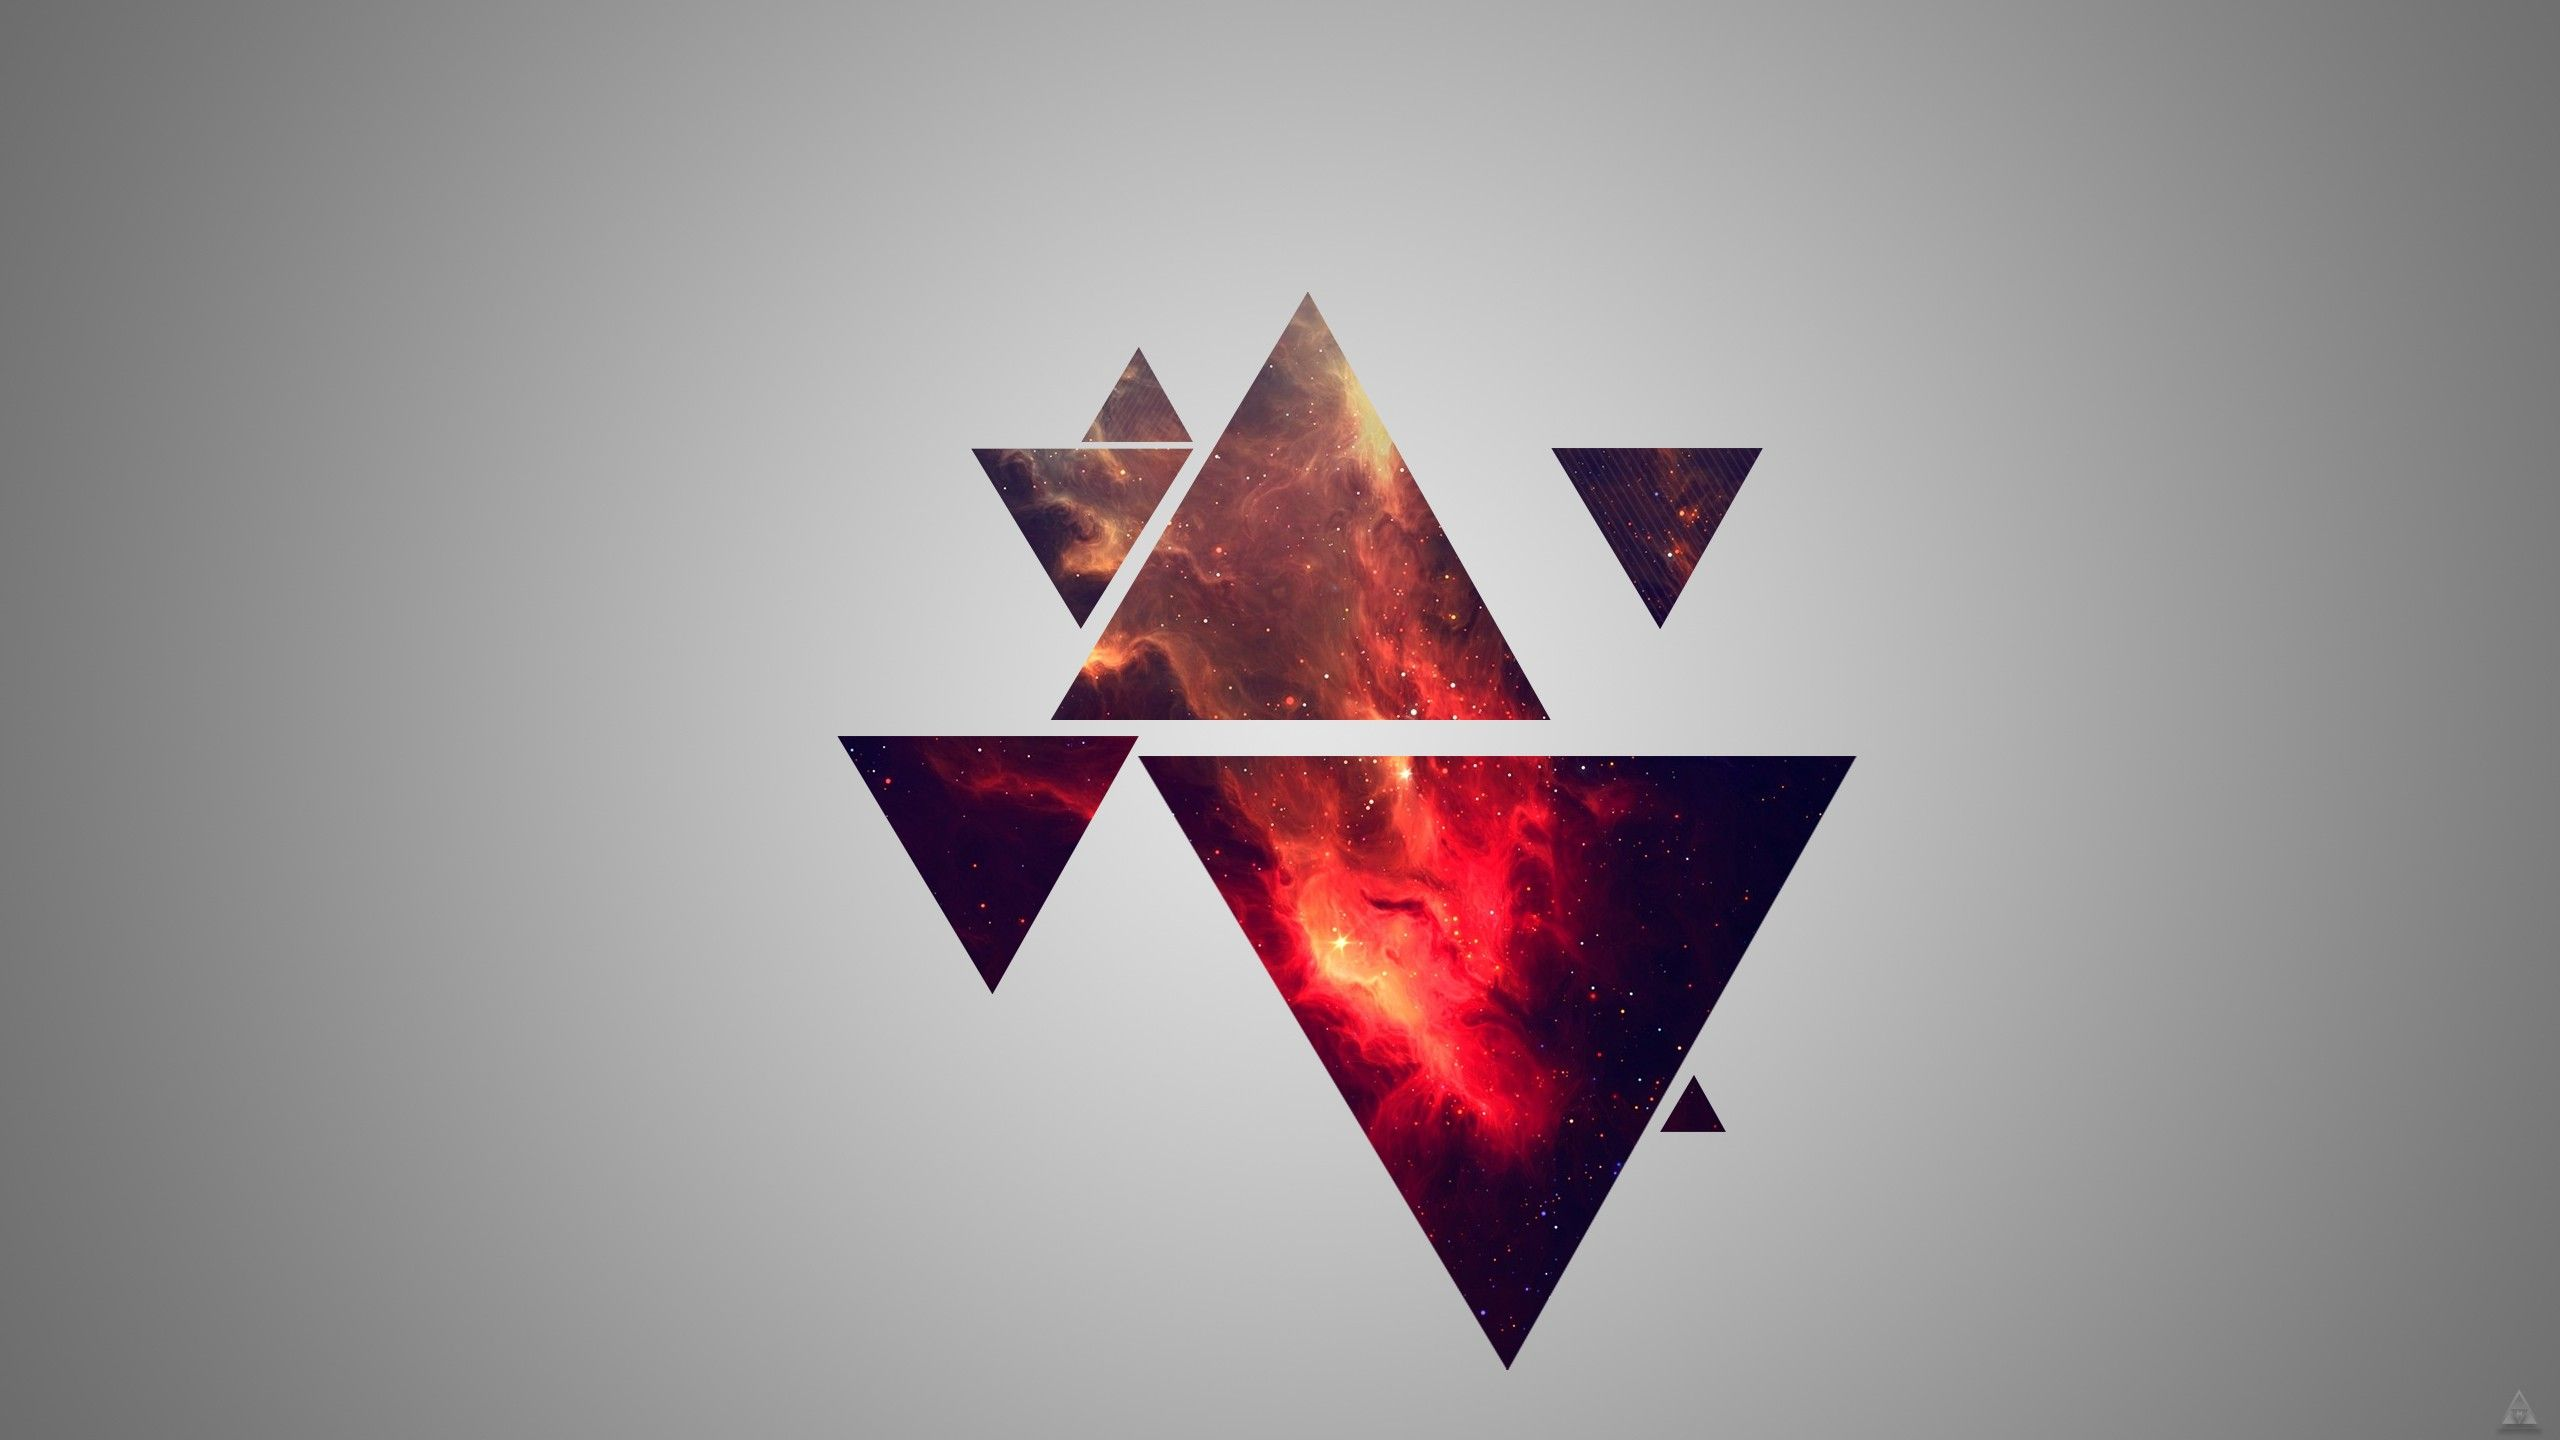 Red Galaxy Triangles [2560 x 1440] | ·Wallpapers ... Hipster Triangle Galaxy Wallpaper